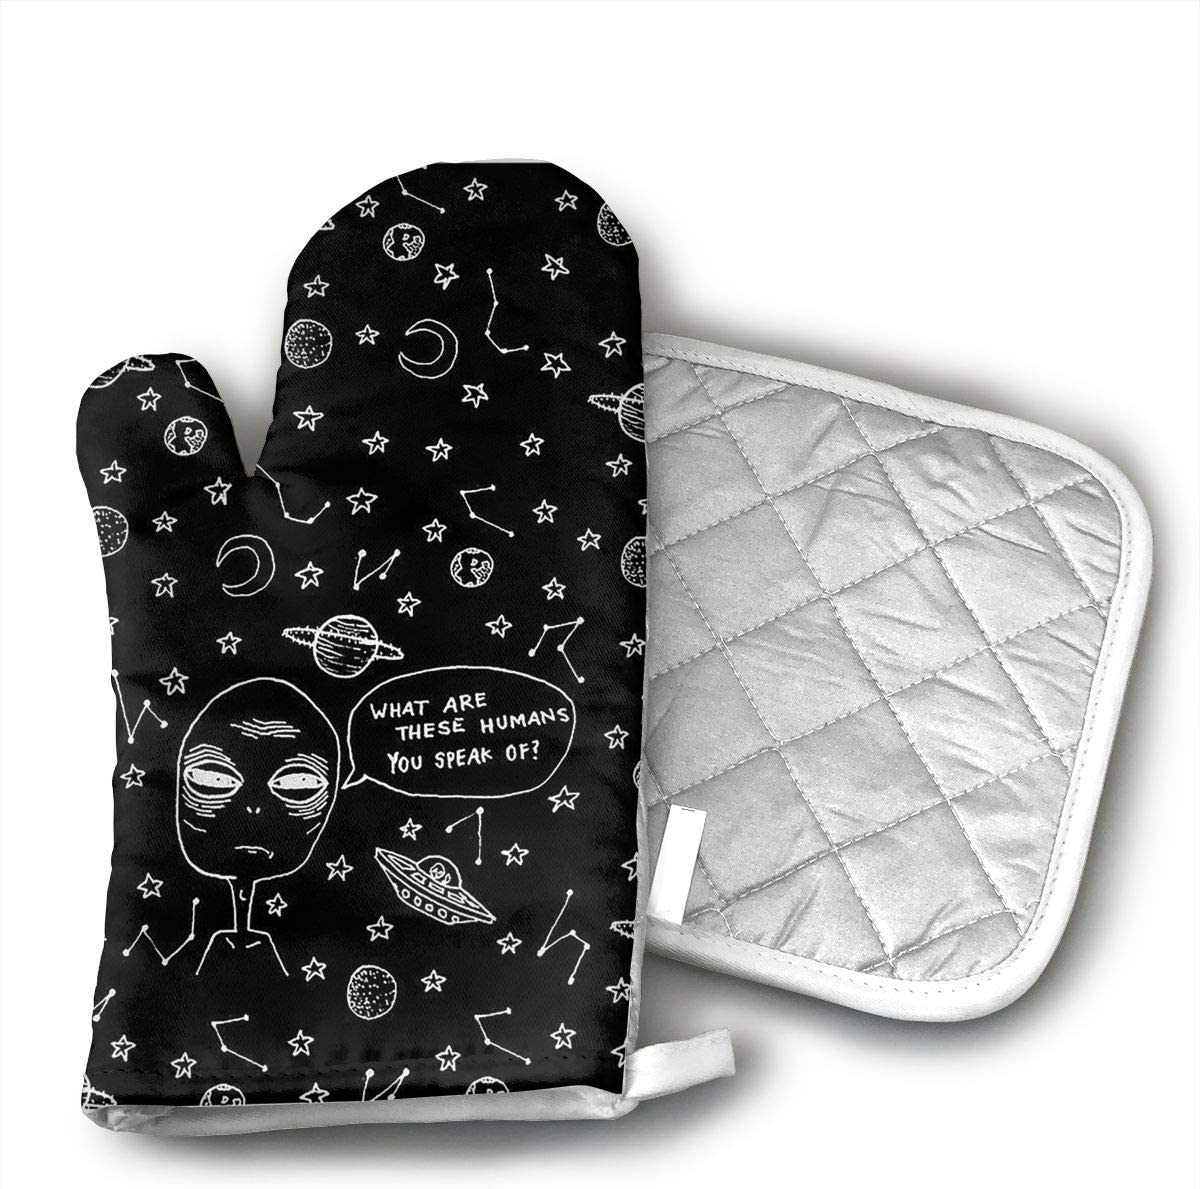 LALABULU Oven Mitts Alien and UFO Non-Slip Silicone Oven Mitts, Extra Long Kitchen Mitts, Heat Resistant to 500Fahrenheit Degrees Kitchen Oven Gloves